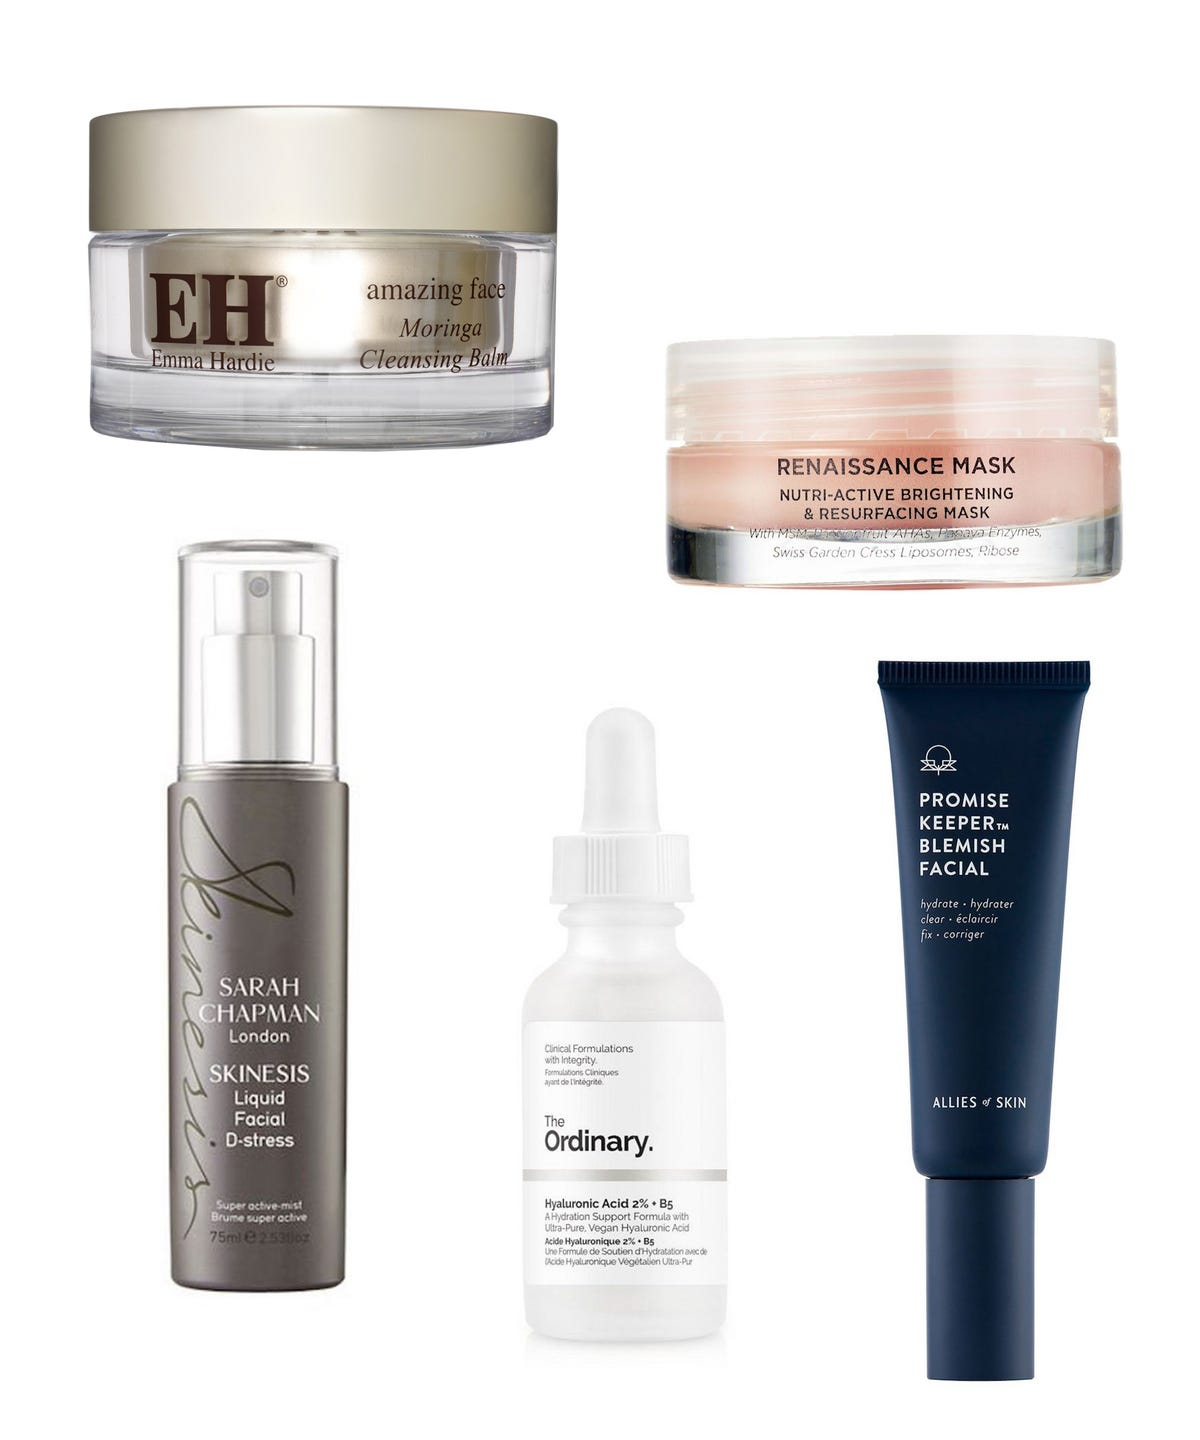 The Best Products For An At-Home Facial